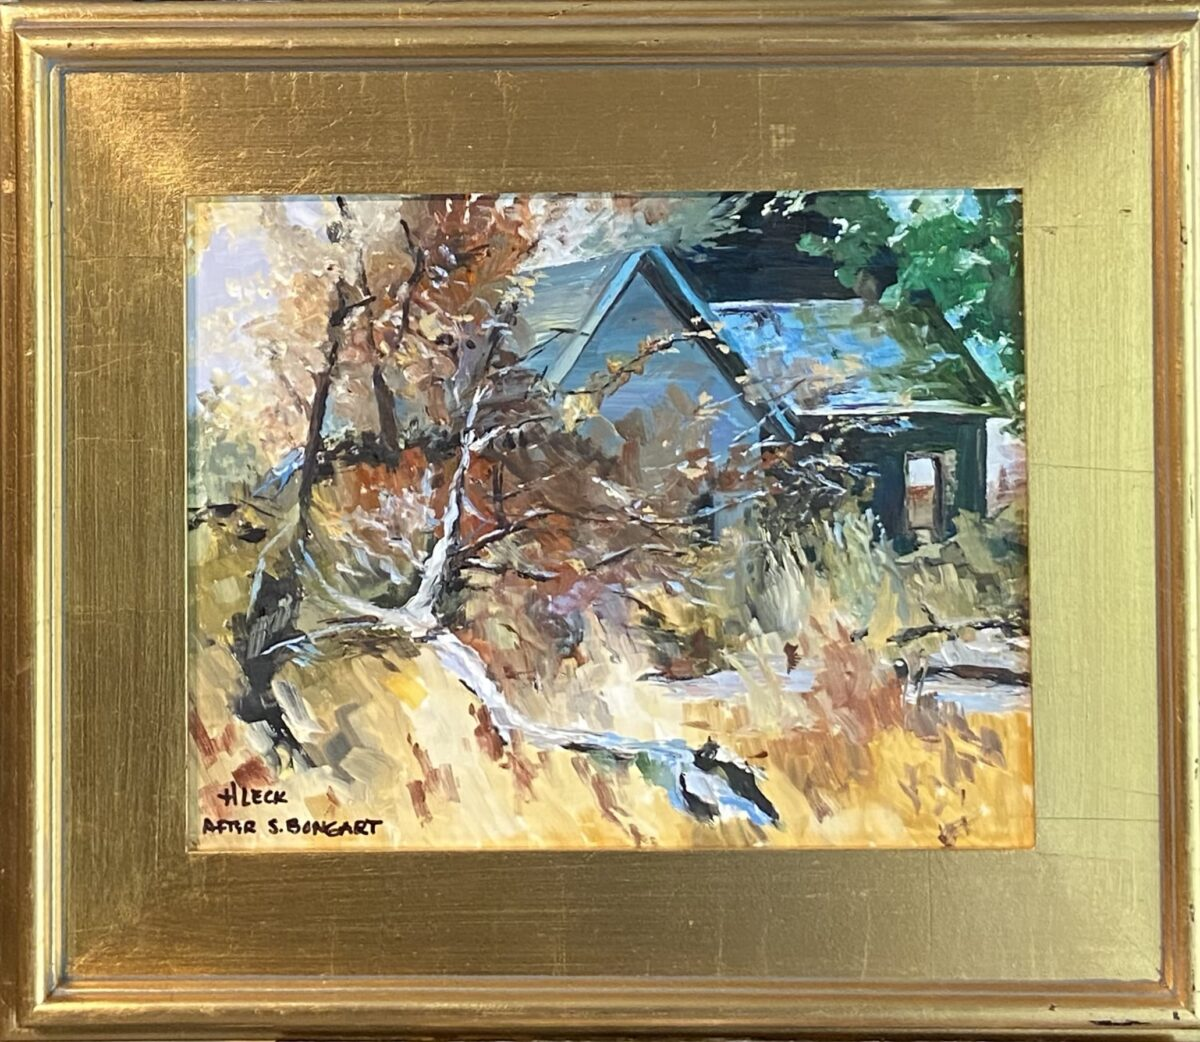 175 - Times Gone By (Bongart) - 11 x 14 - Landscape - $275